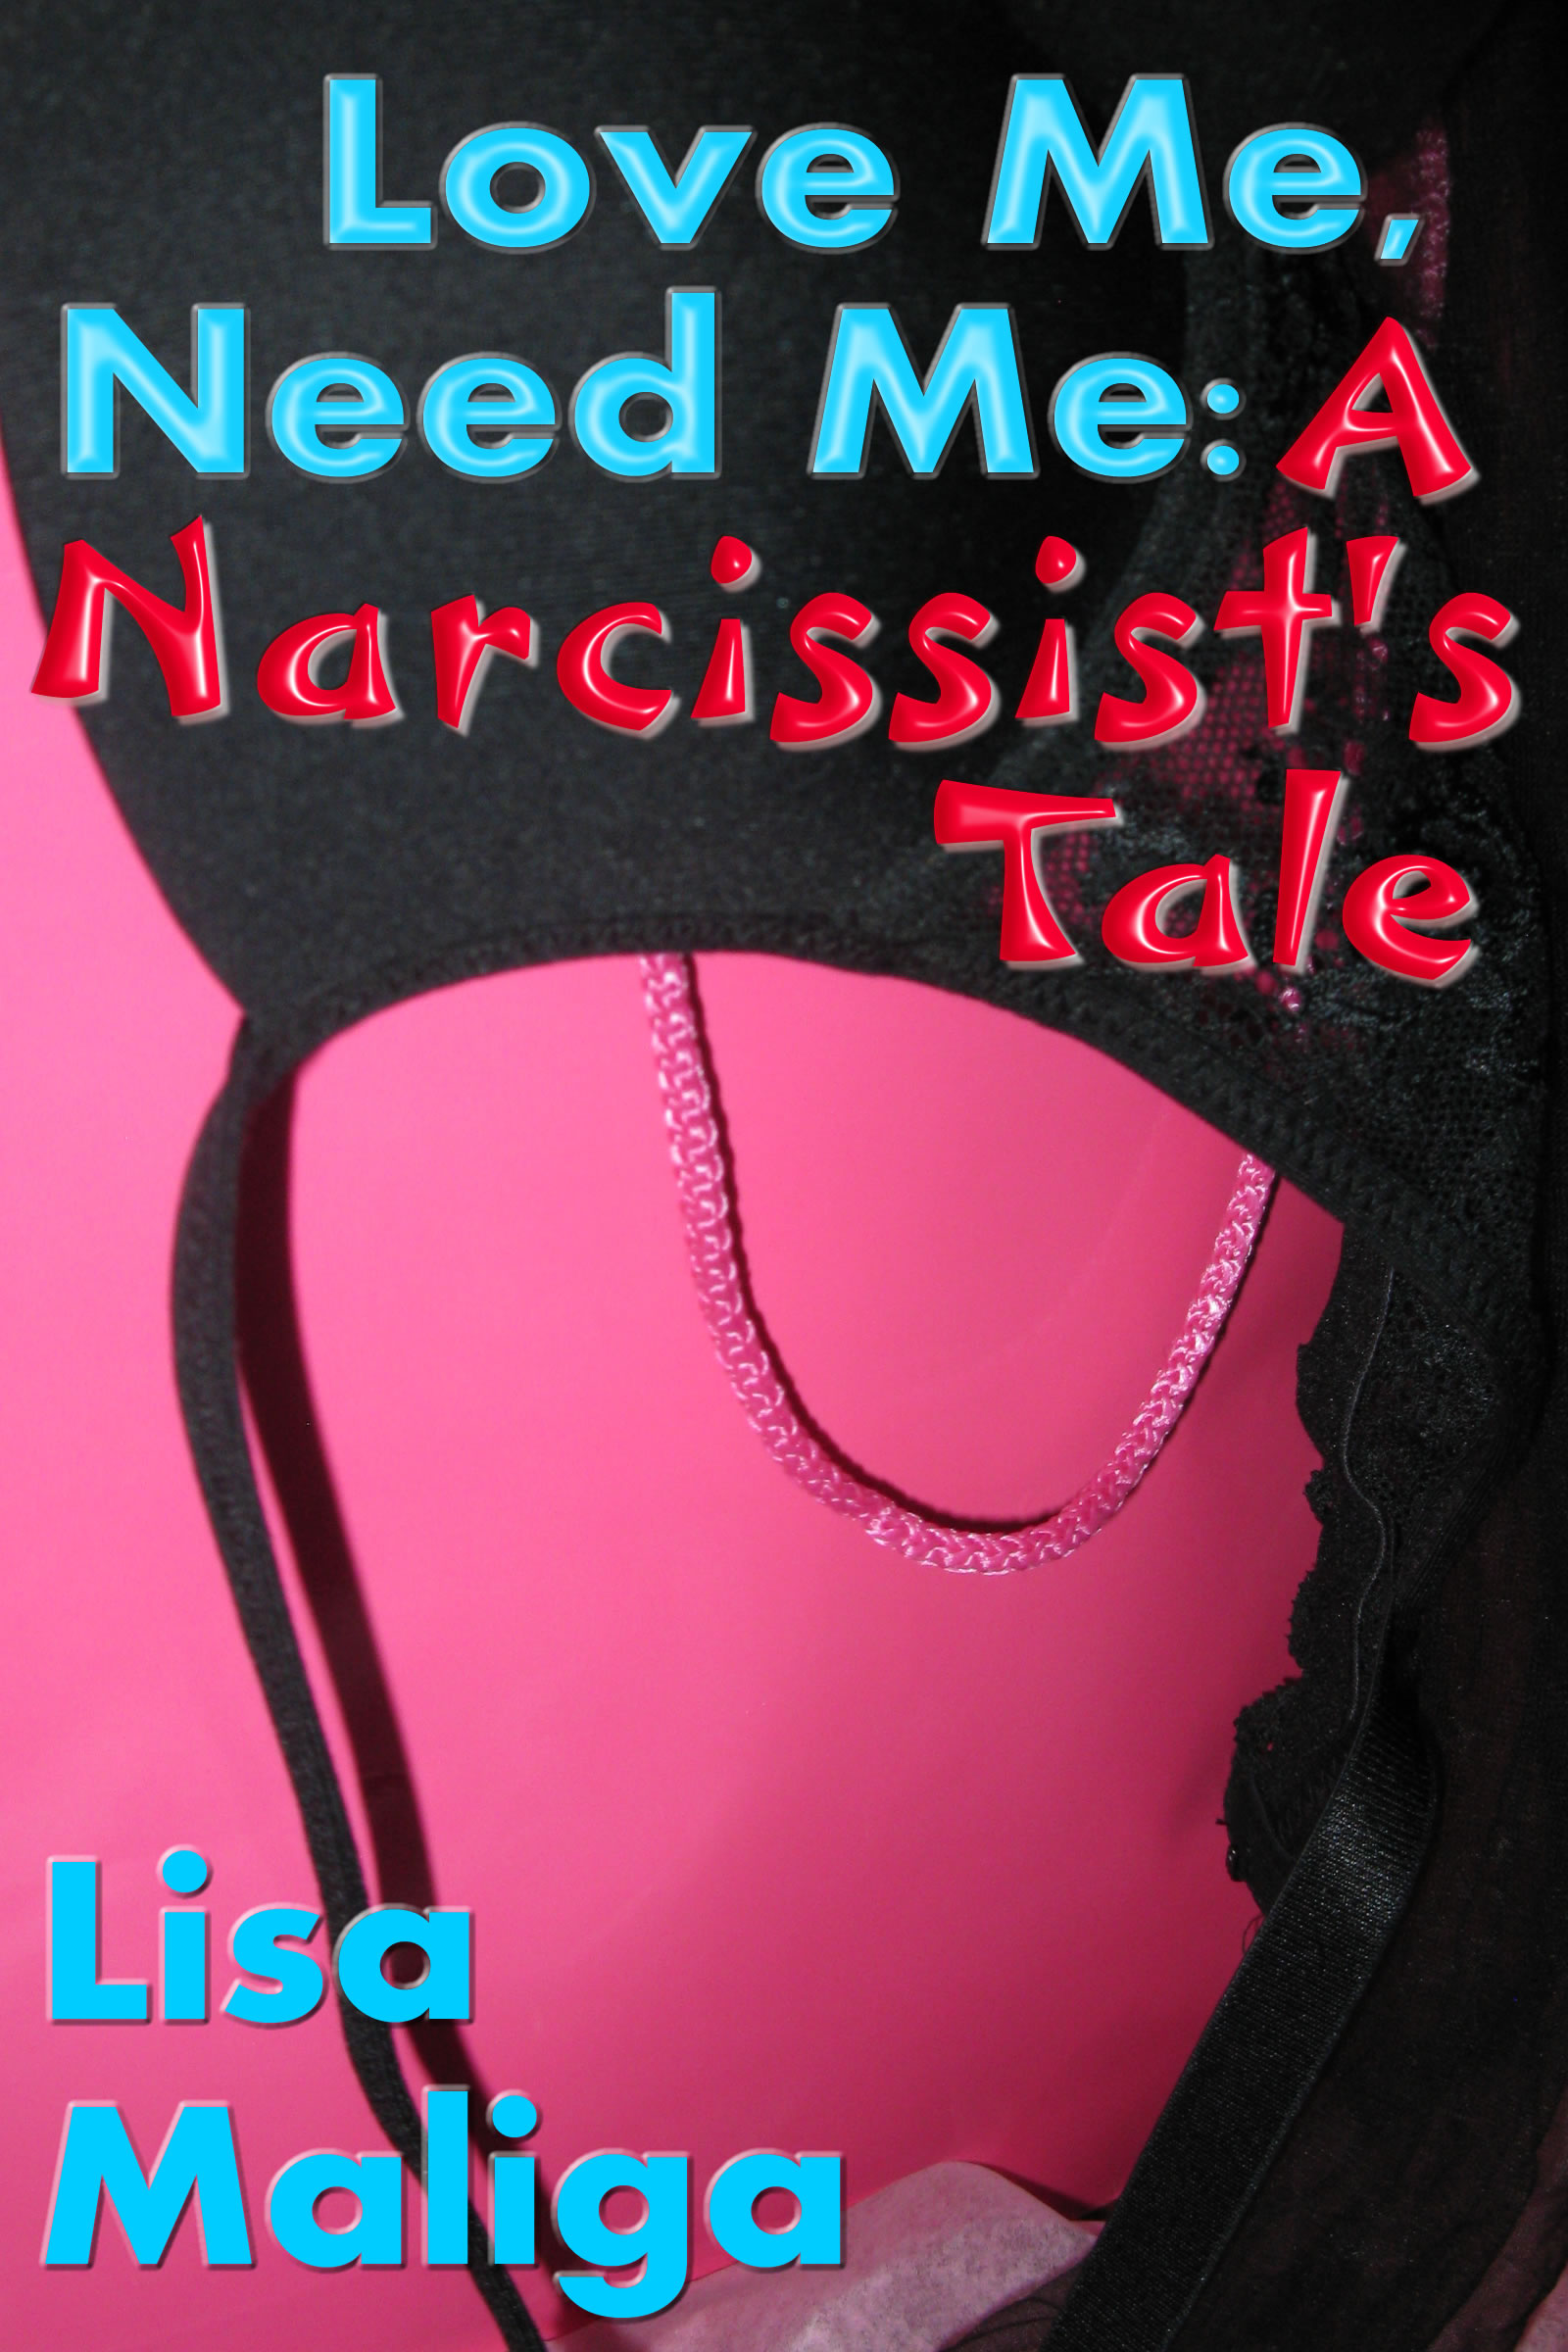 love me, need me: a narcissist's tale by lisa maliga ebook